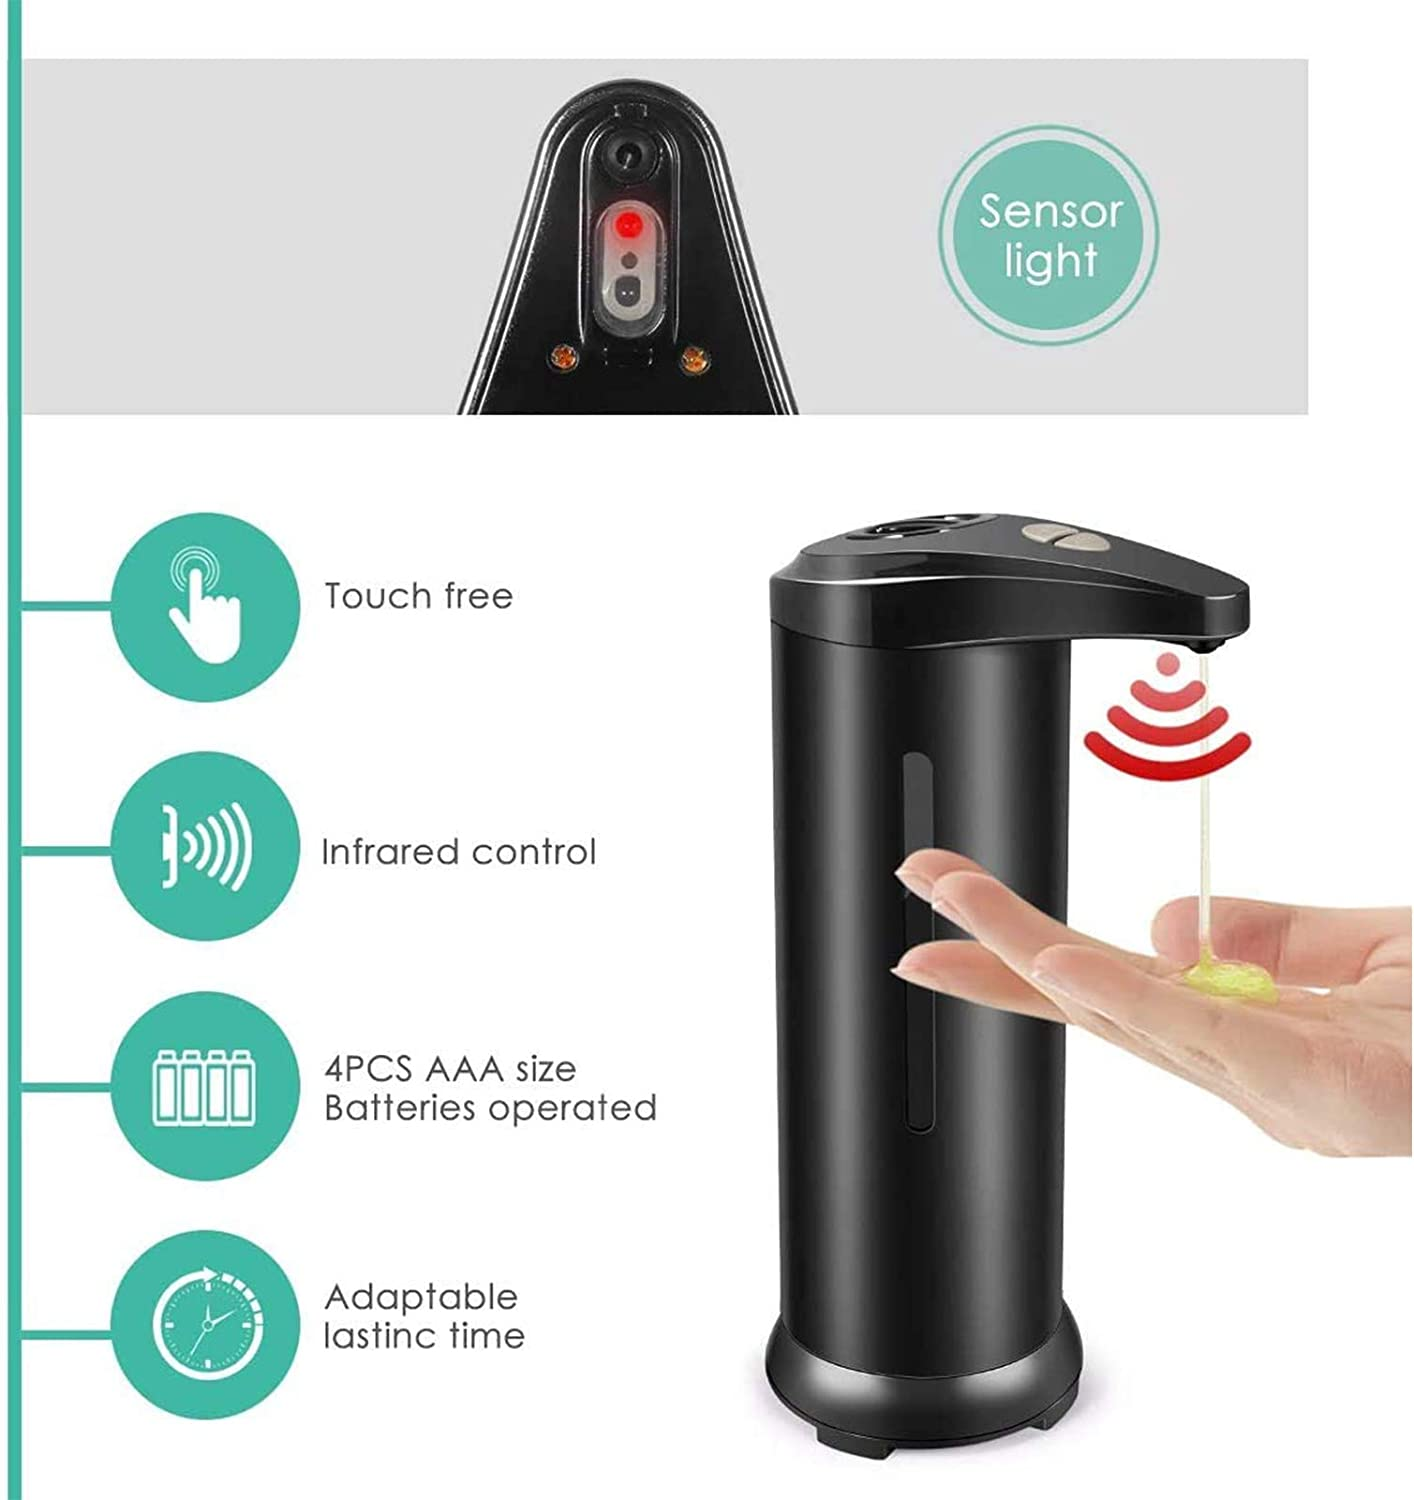 High Capacity Soap Dispenser with Infrared Motion Sensor and Stainless Steel Upgraded Waterproof Base Automatic Soap Dispenser Suitable for Kitchen Bathroom Hotel Touchless Soap Dispenser